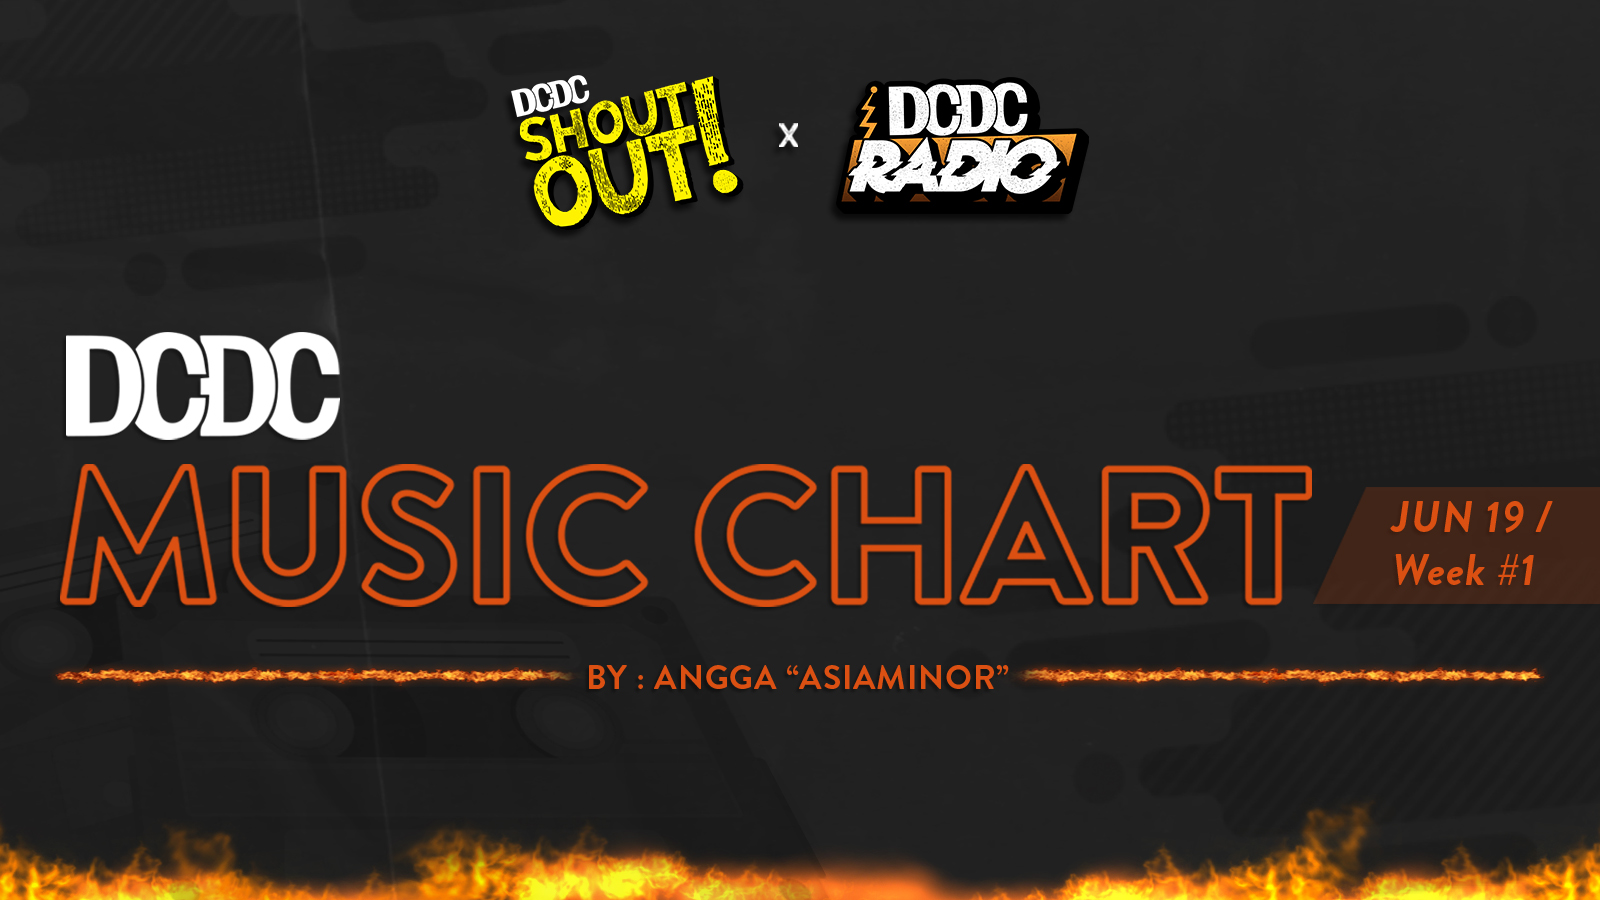 DCDC Music Chart - #1st Week of June 2019